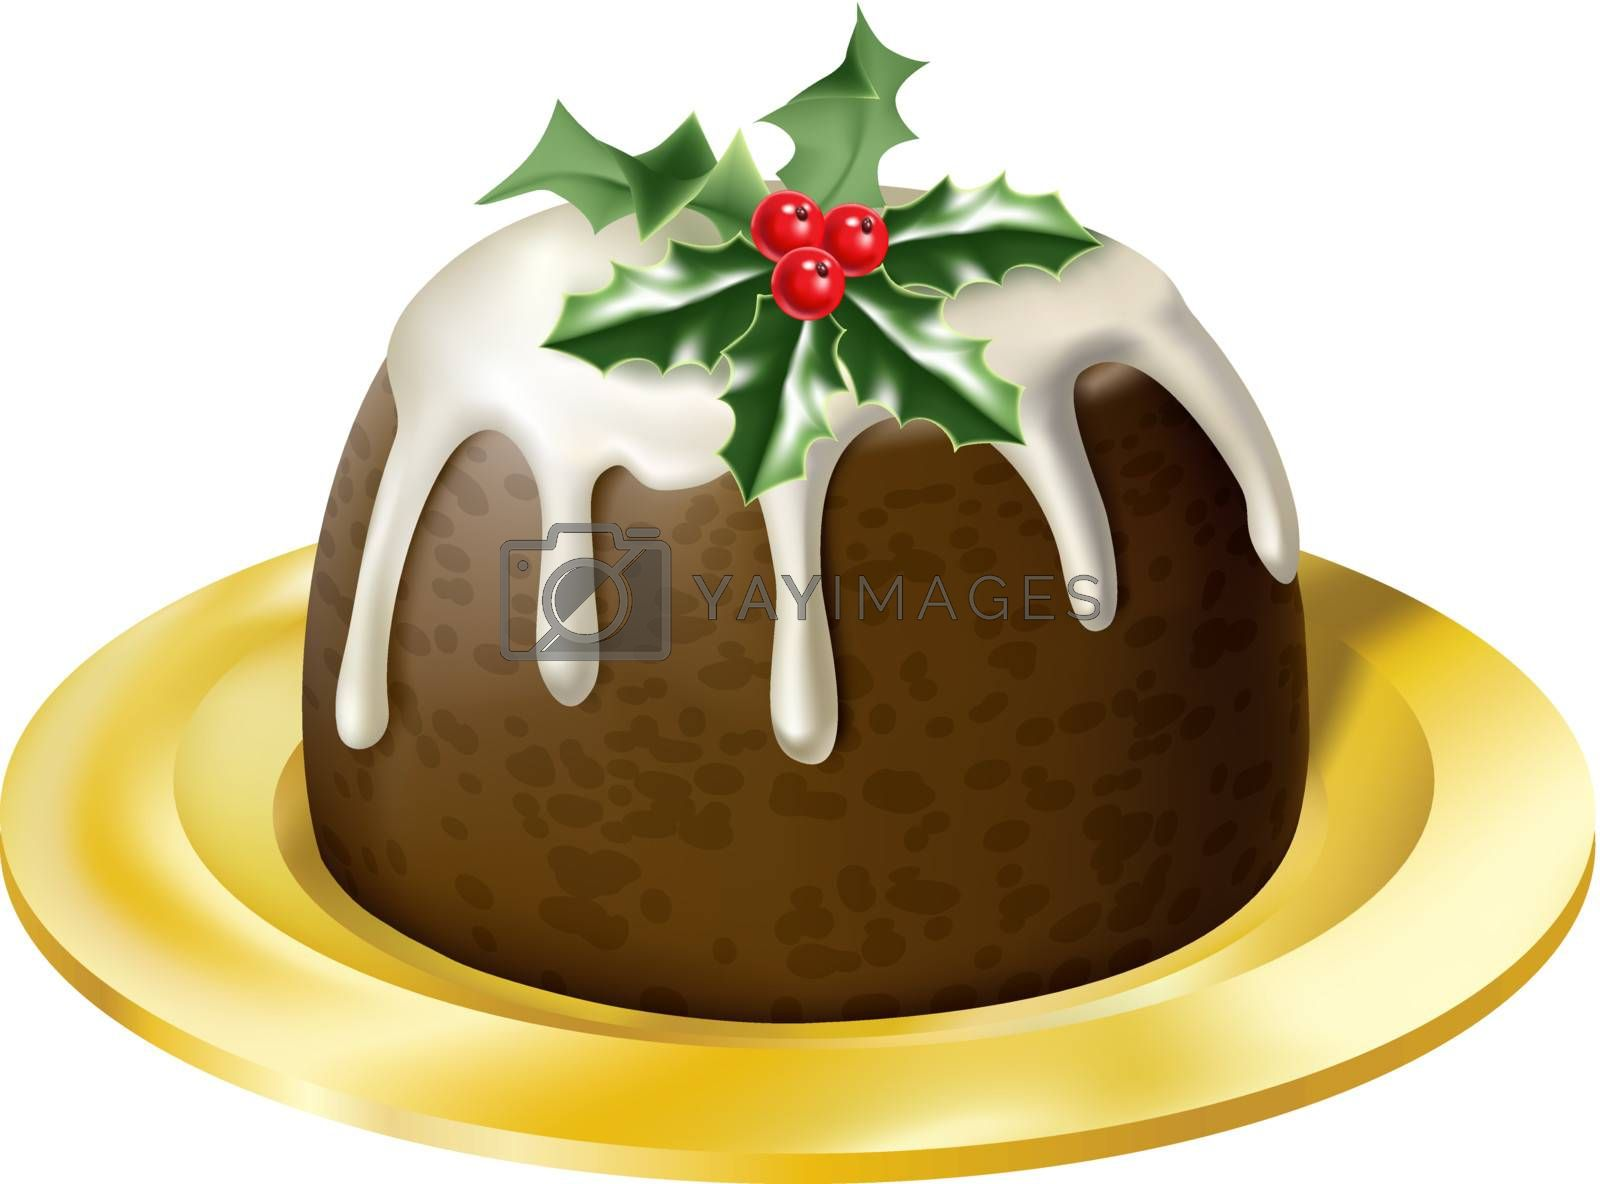 an illustration of a yummy glossy christmas pudding on a plate